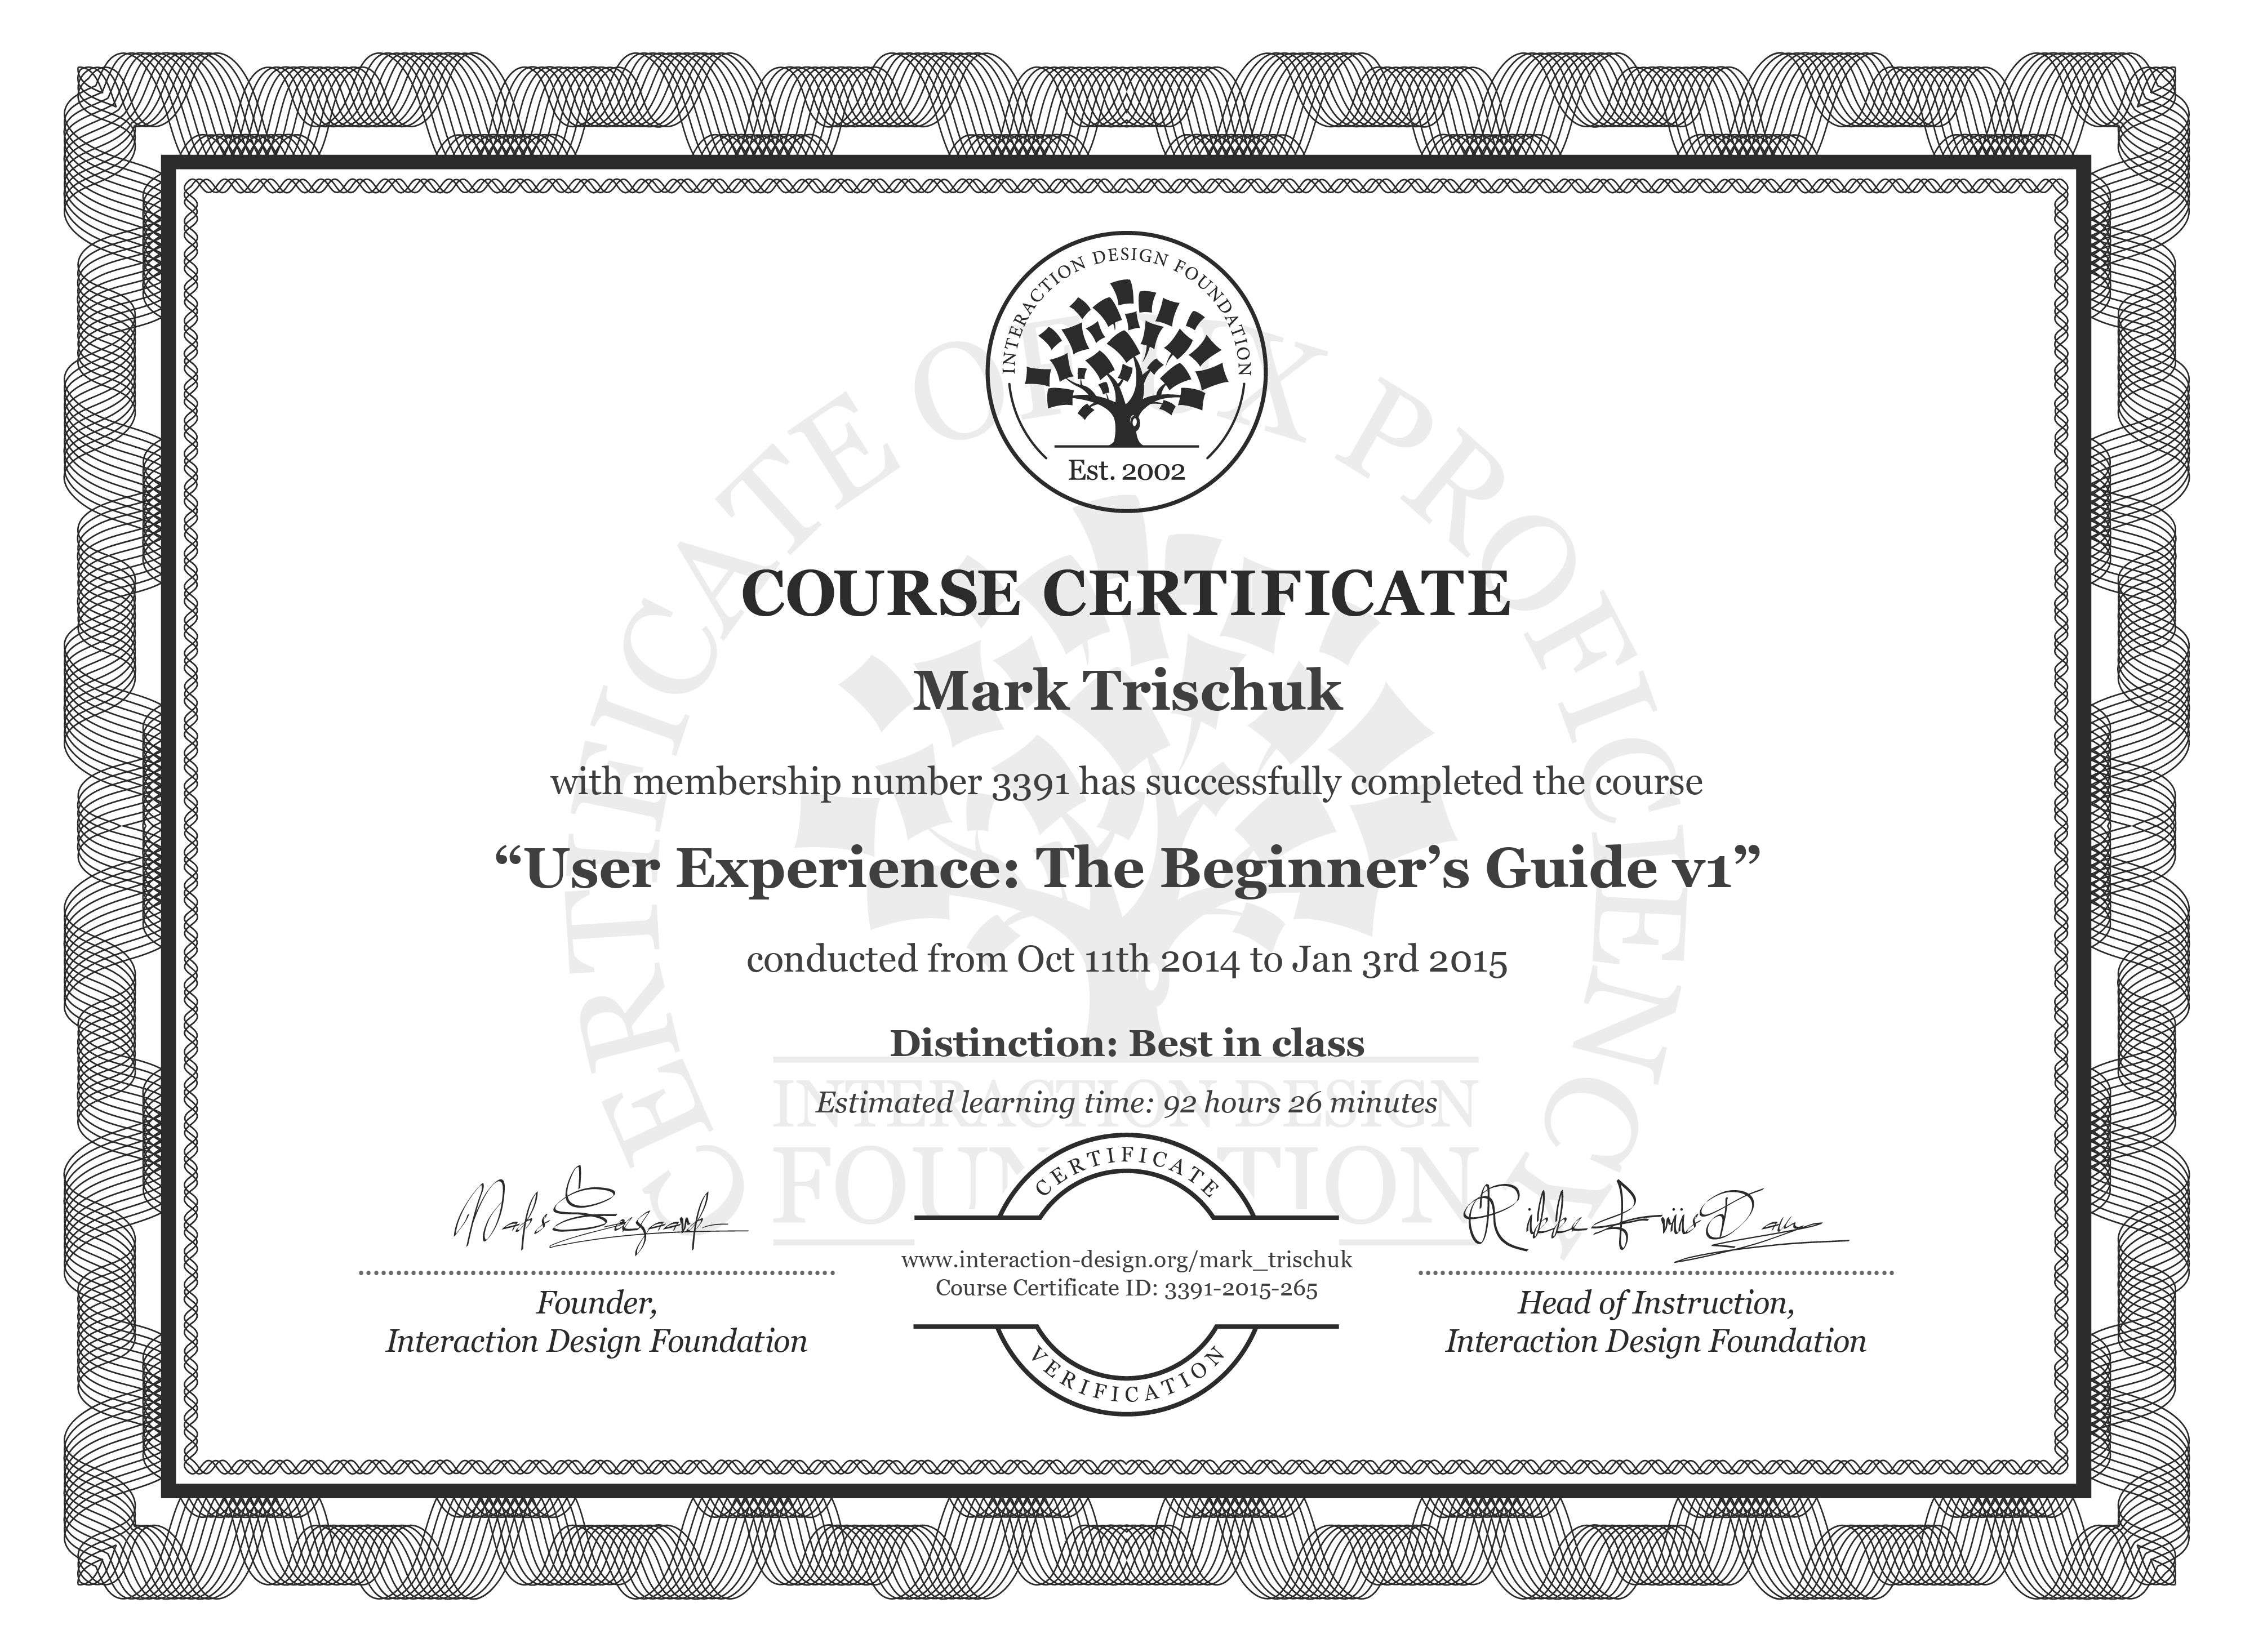 Mark Trischuk: Course Certificate - User Experience: The Beginner's Guide